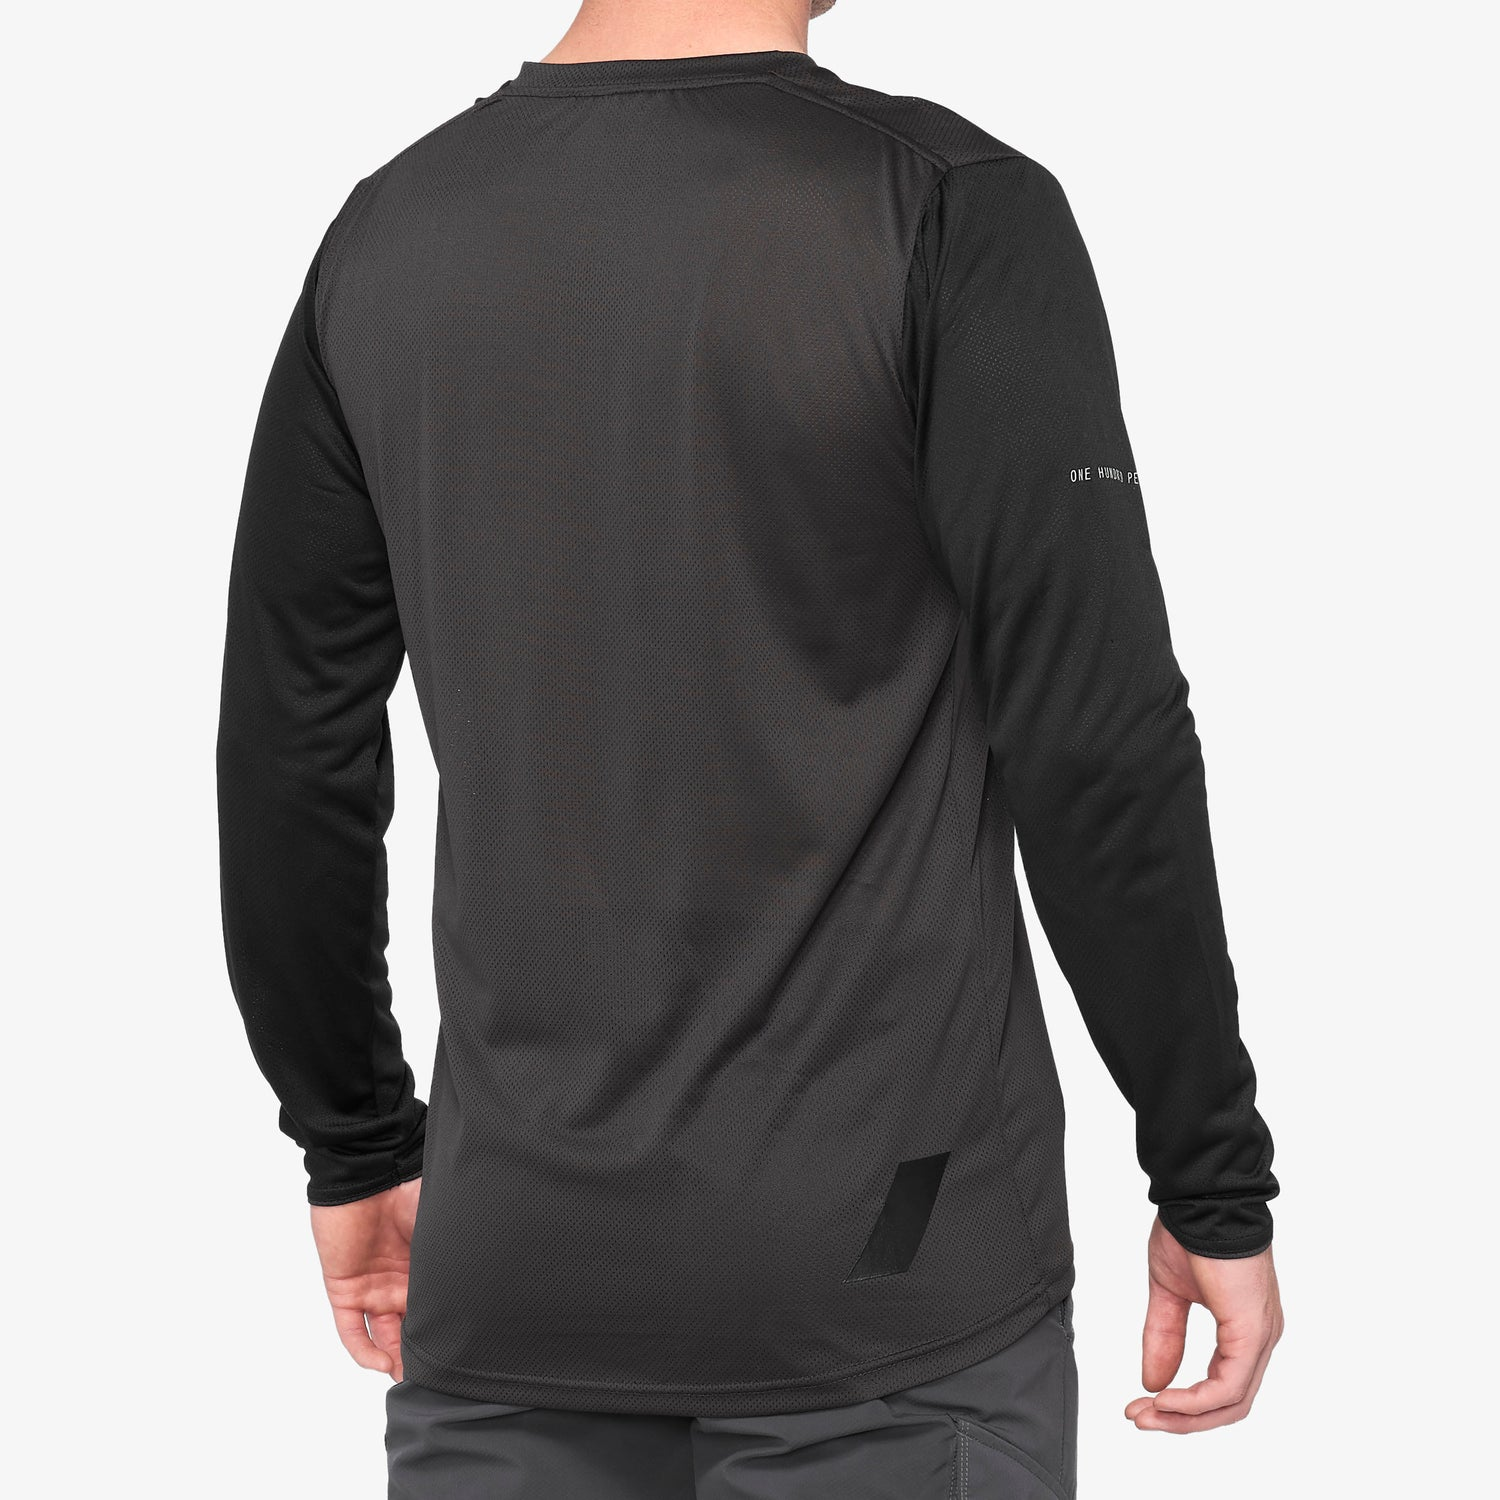 RIDECAMP Long Sleeve Jersey Black/Charcoal